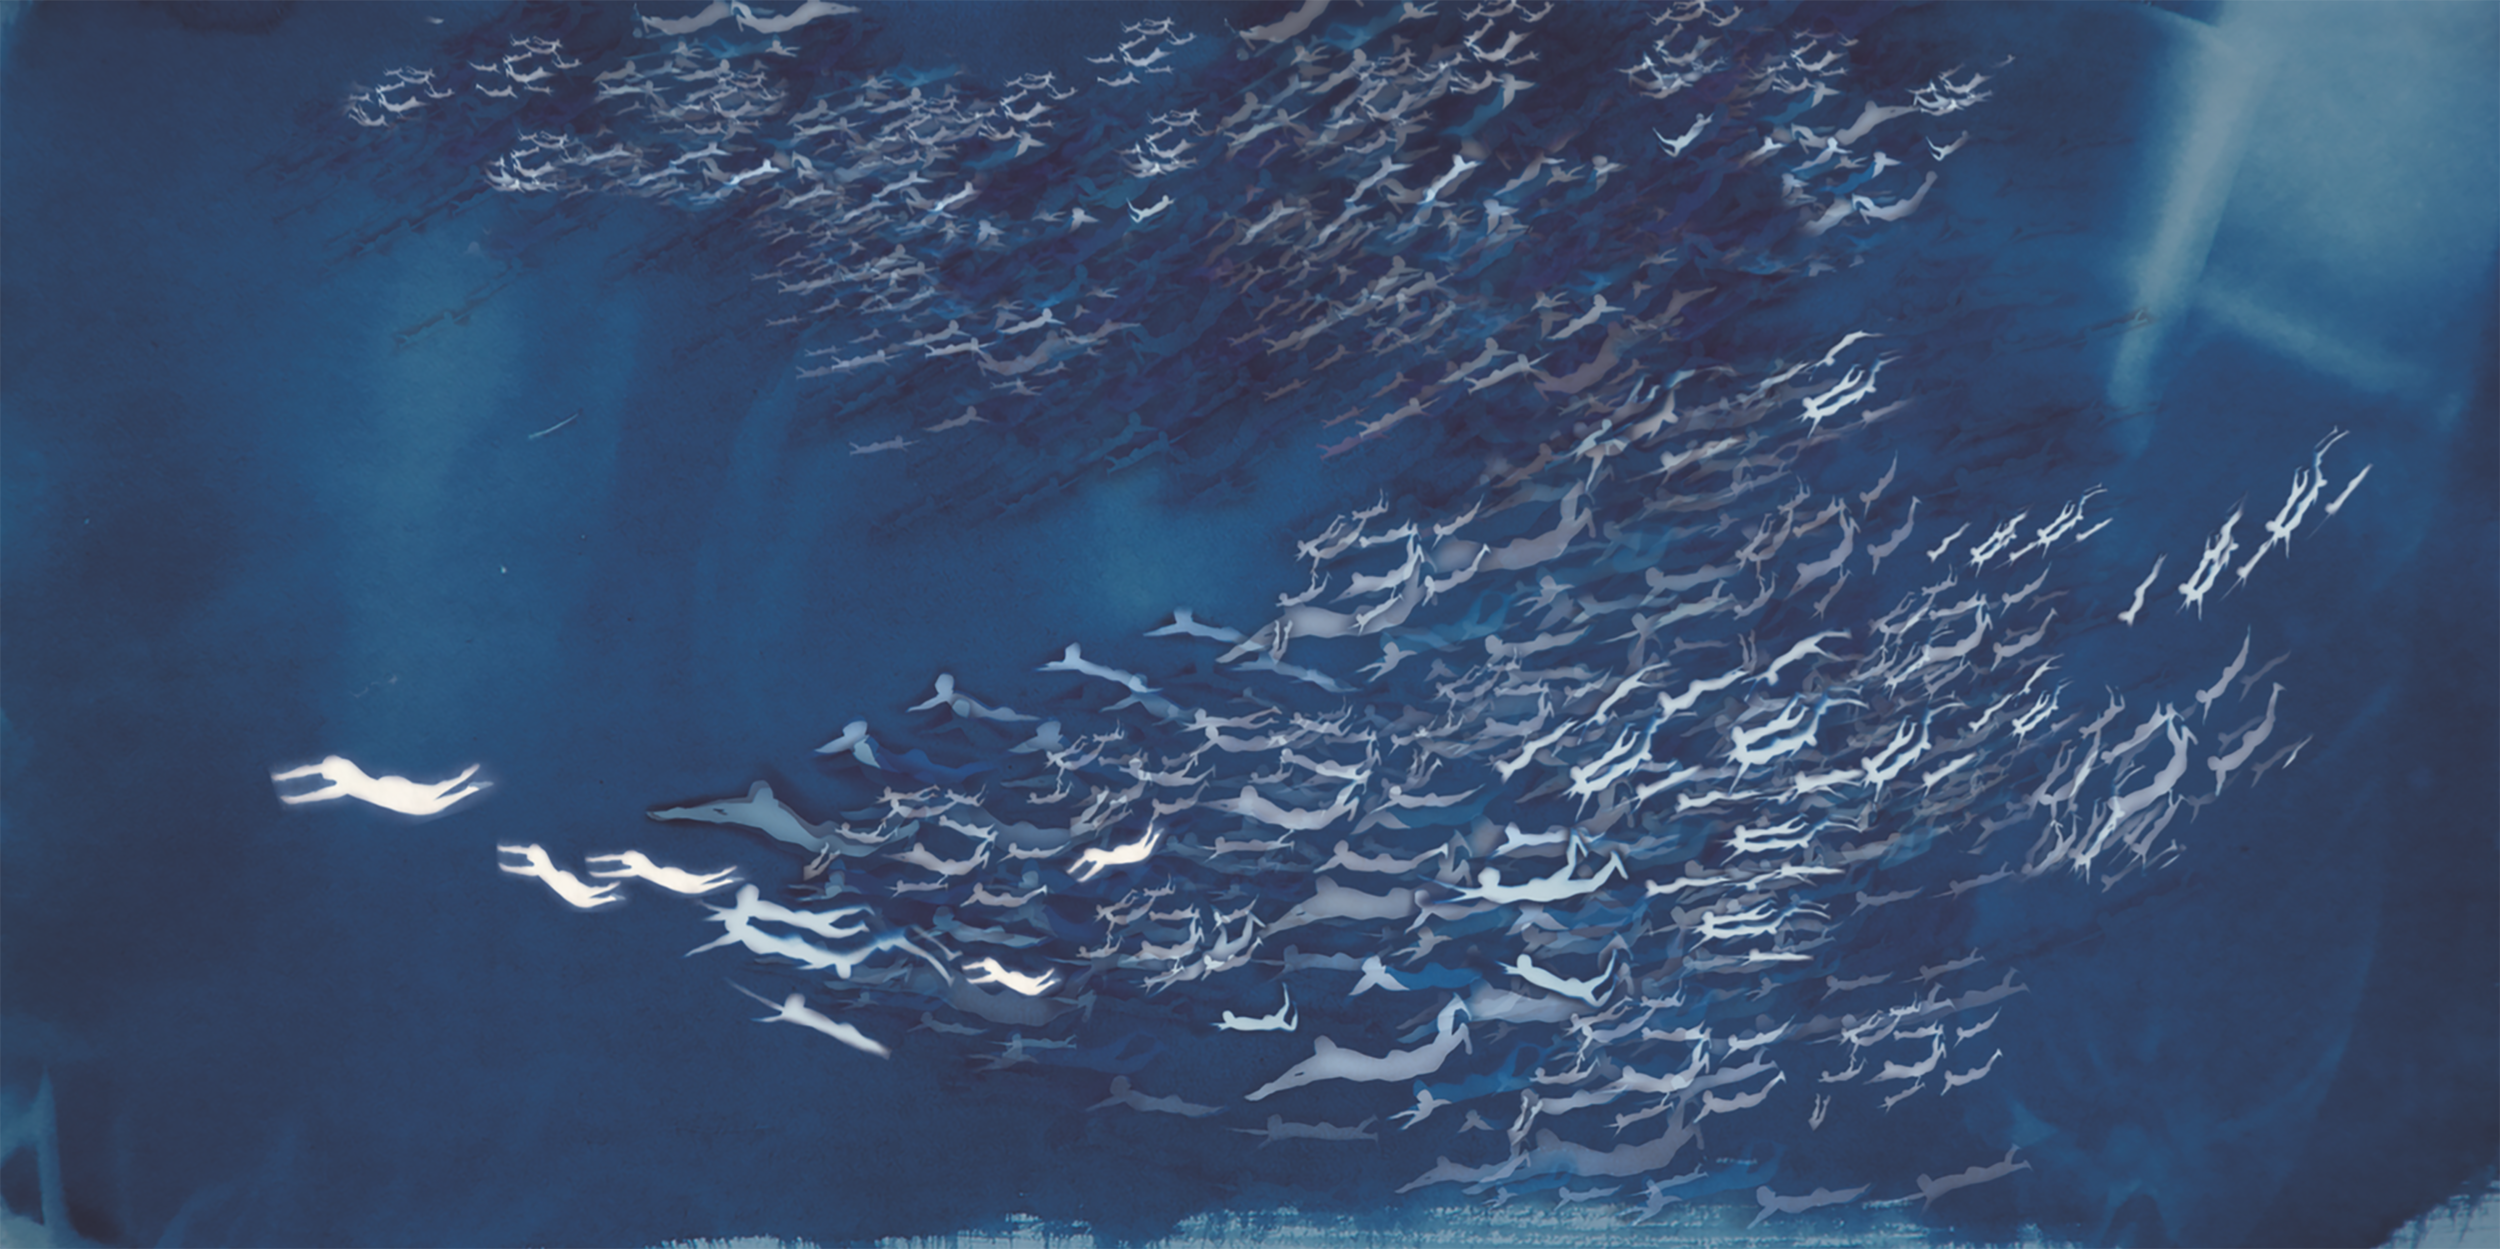 Han Qin,  The Age of Migration 1 , 2018. Cyanotype, watercolor, inkjet print on silk, 28 x 56 inch ©Han Qin, courtesy Fou Gallery